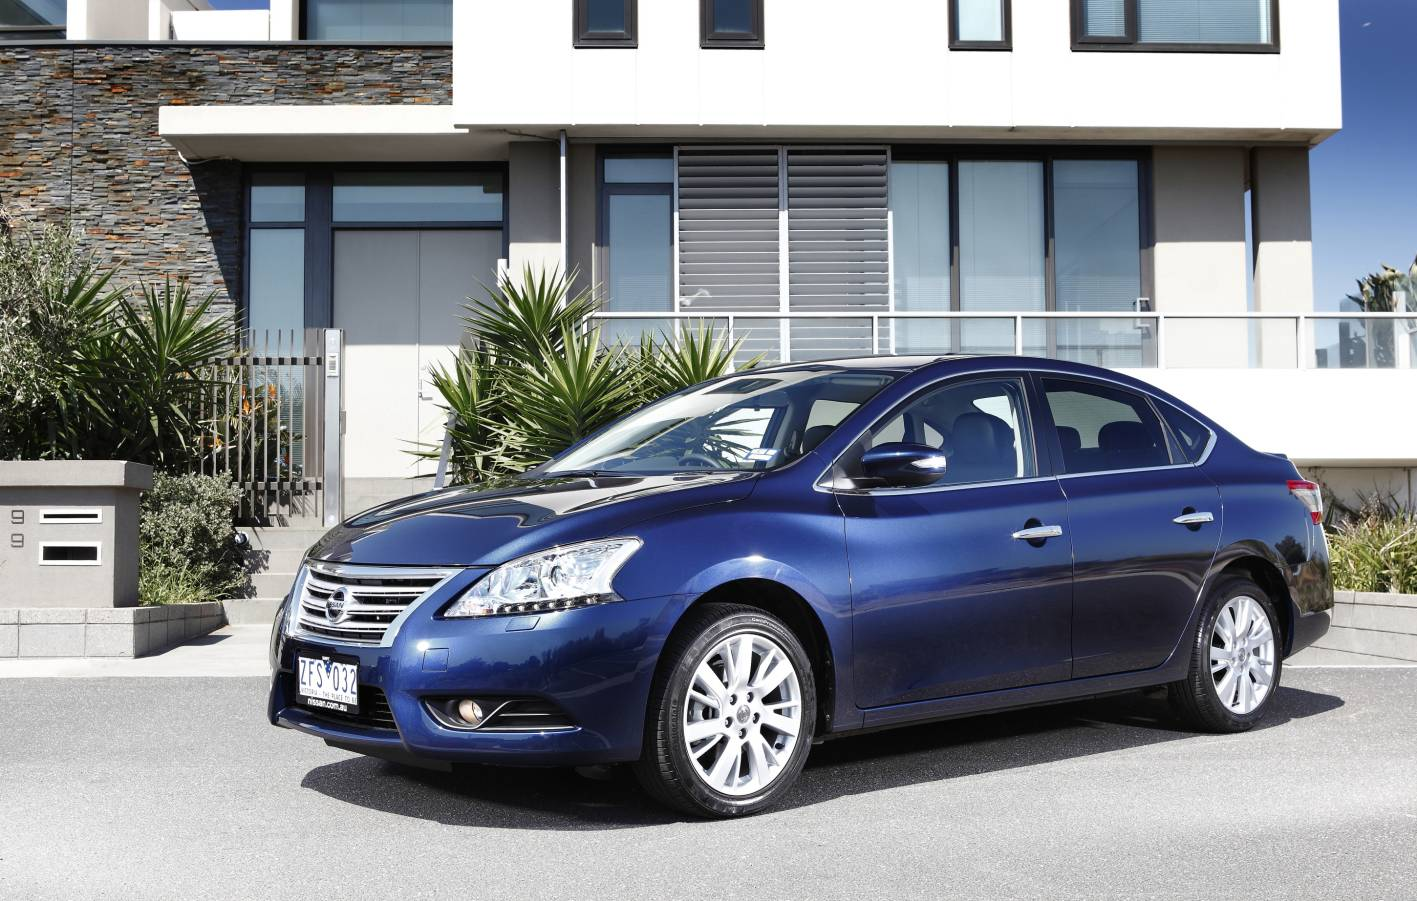 Nissan Cars - News: 2013 Pulsar launched from $19,990